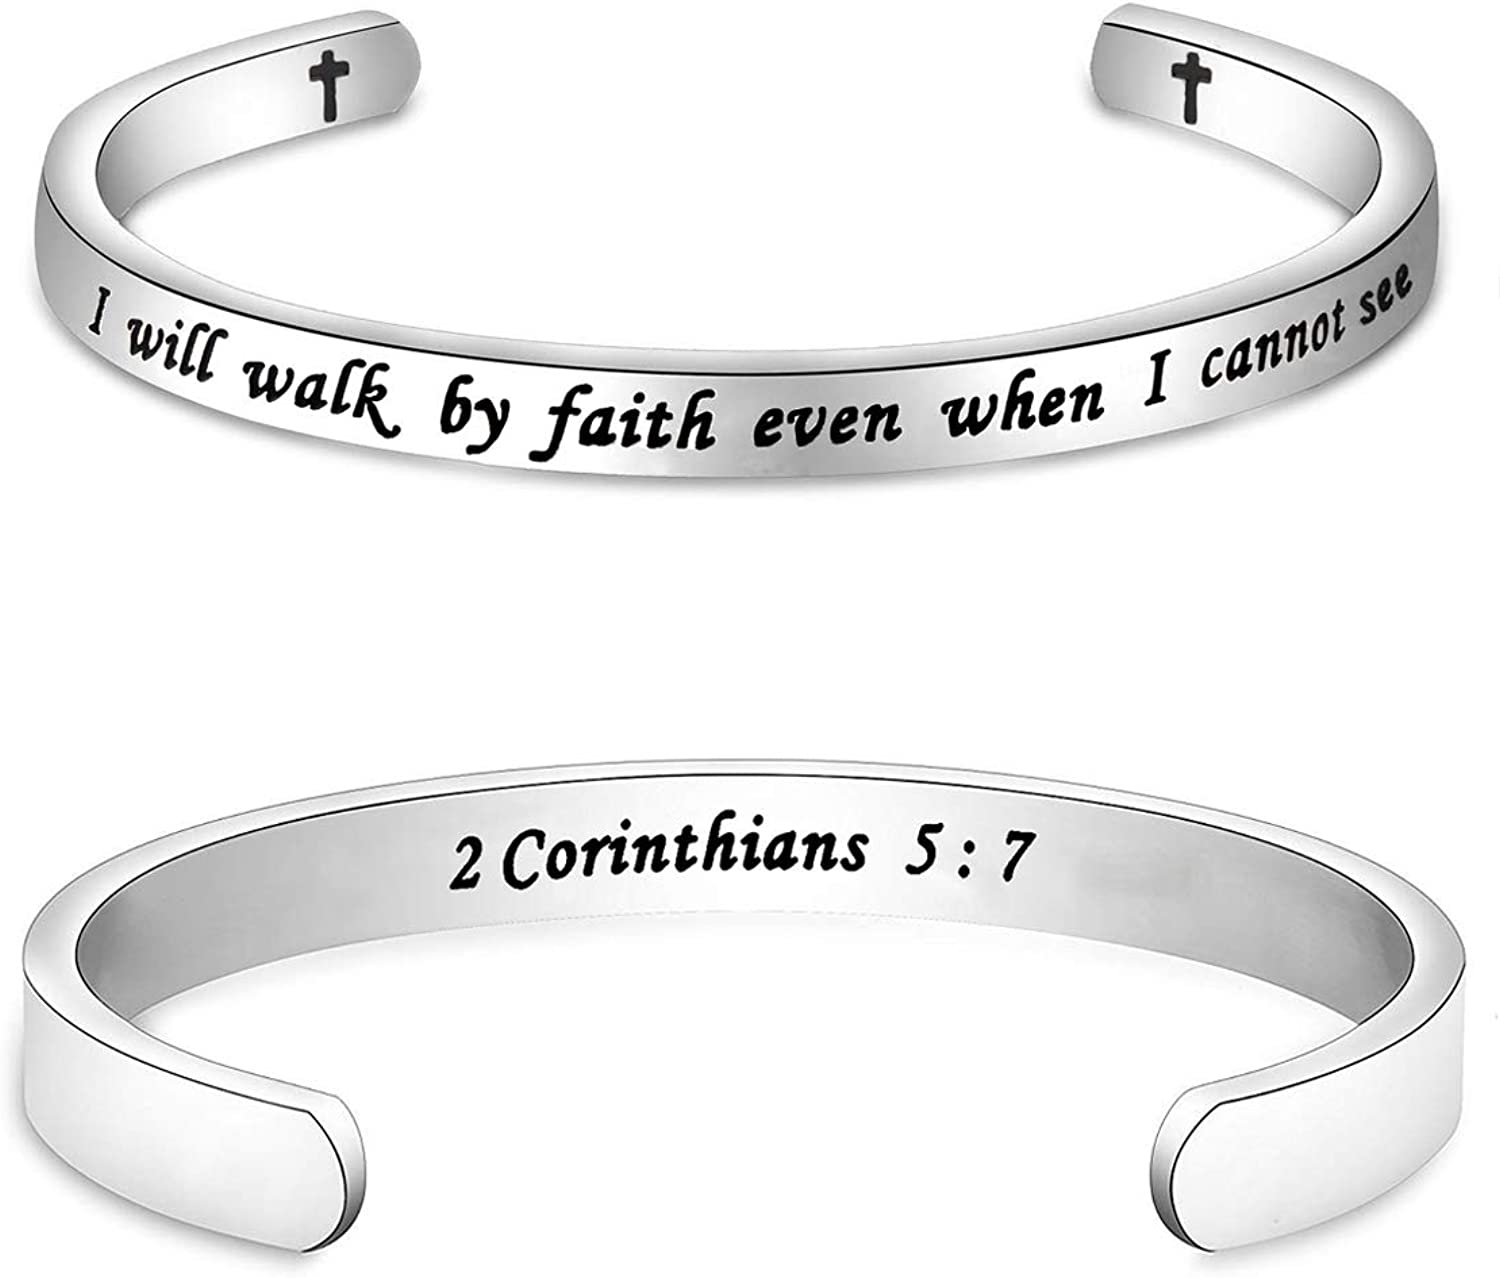 Gzrlyf Bible Verse Bracelet Cuff Bracelet I Will Walk by Faith Even When I Cannot See 2 Corinthians 5:7 Religious Gifts